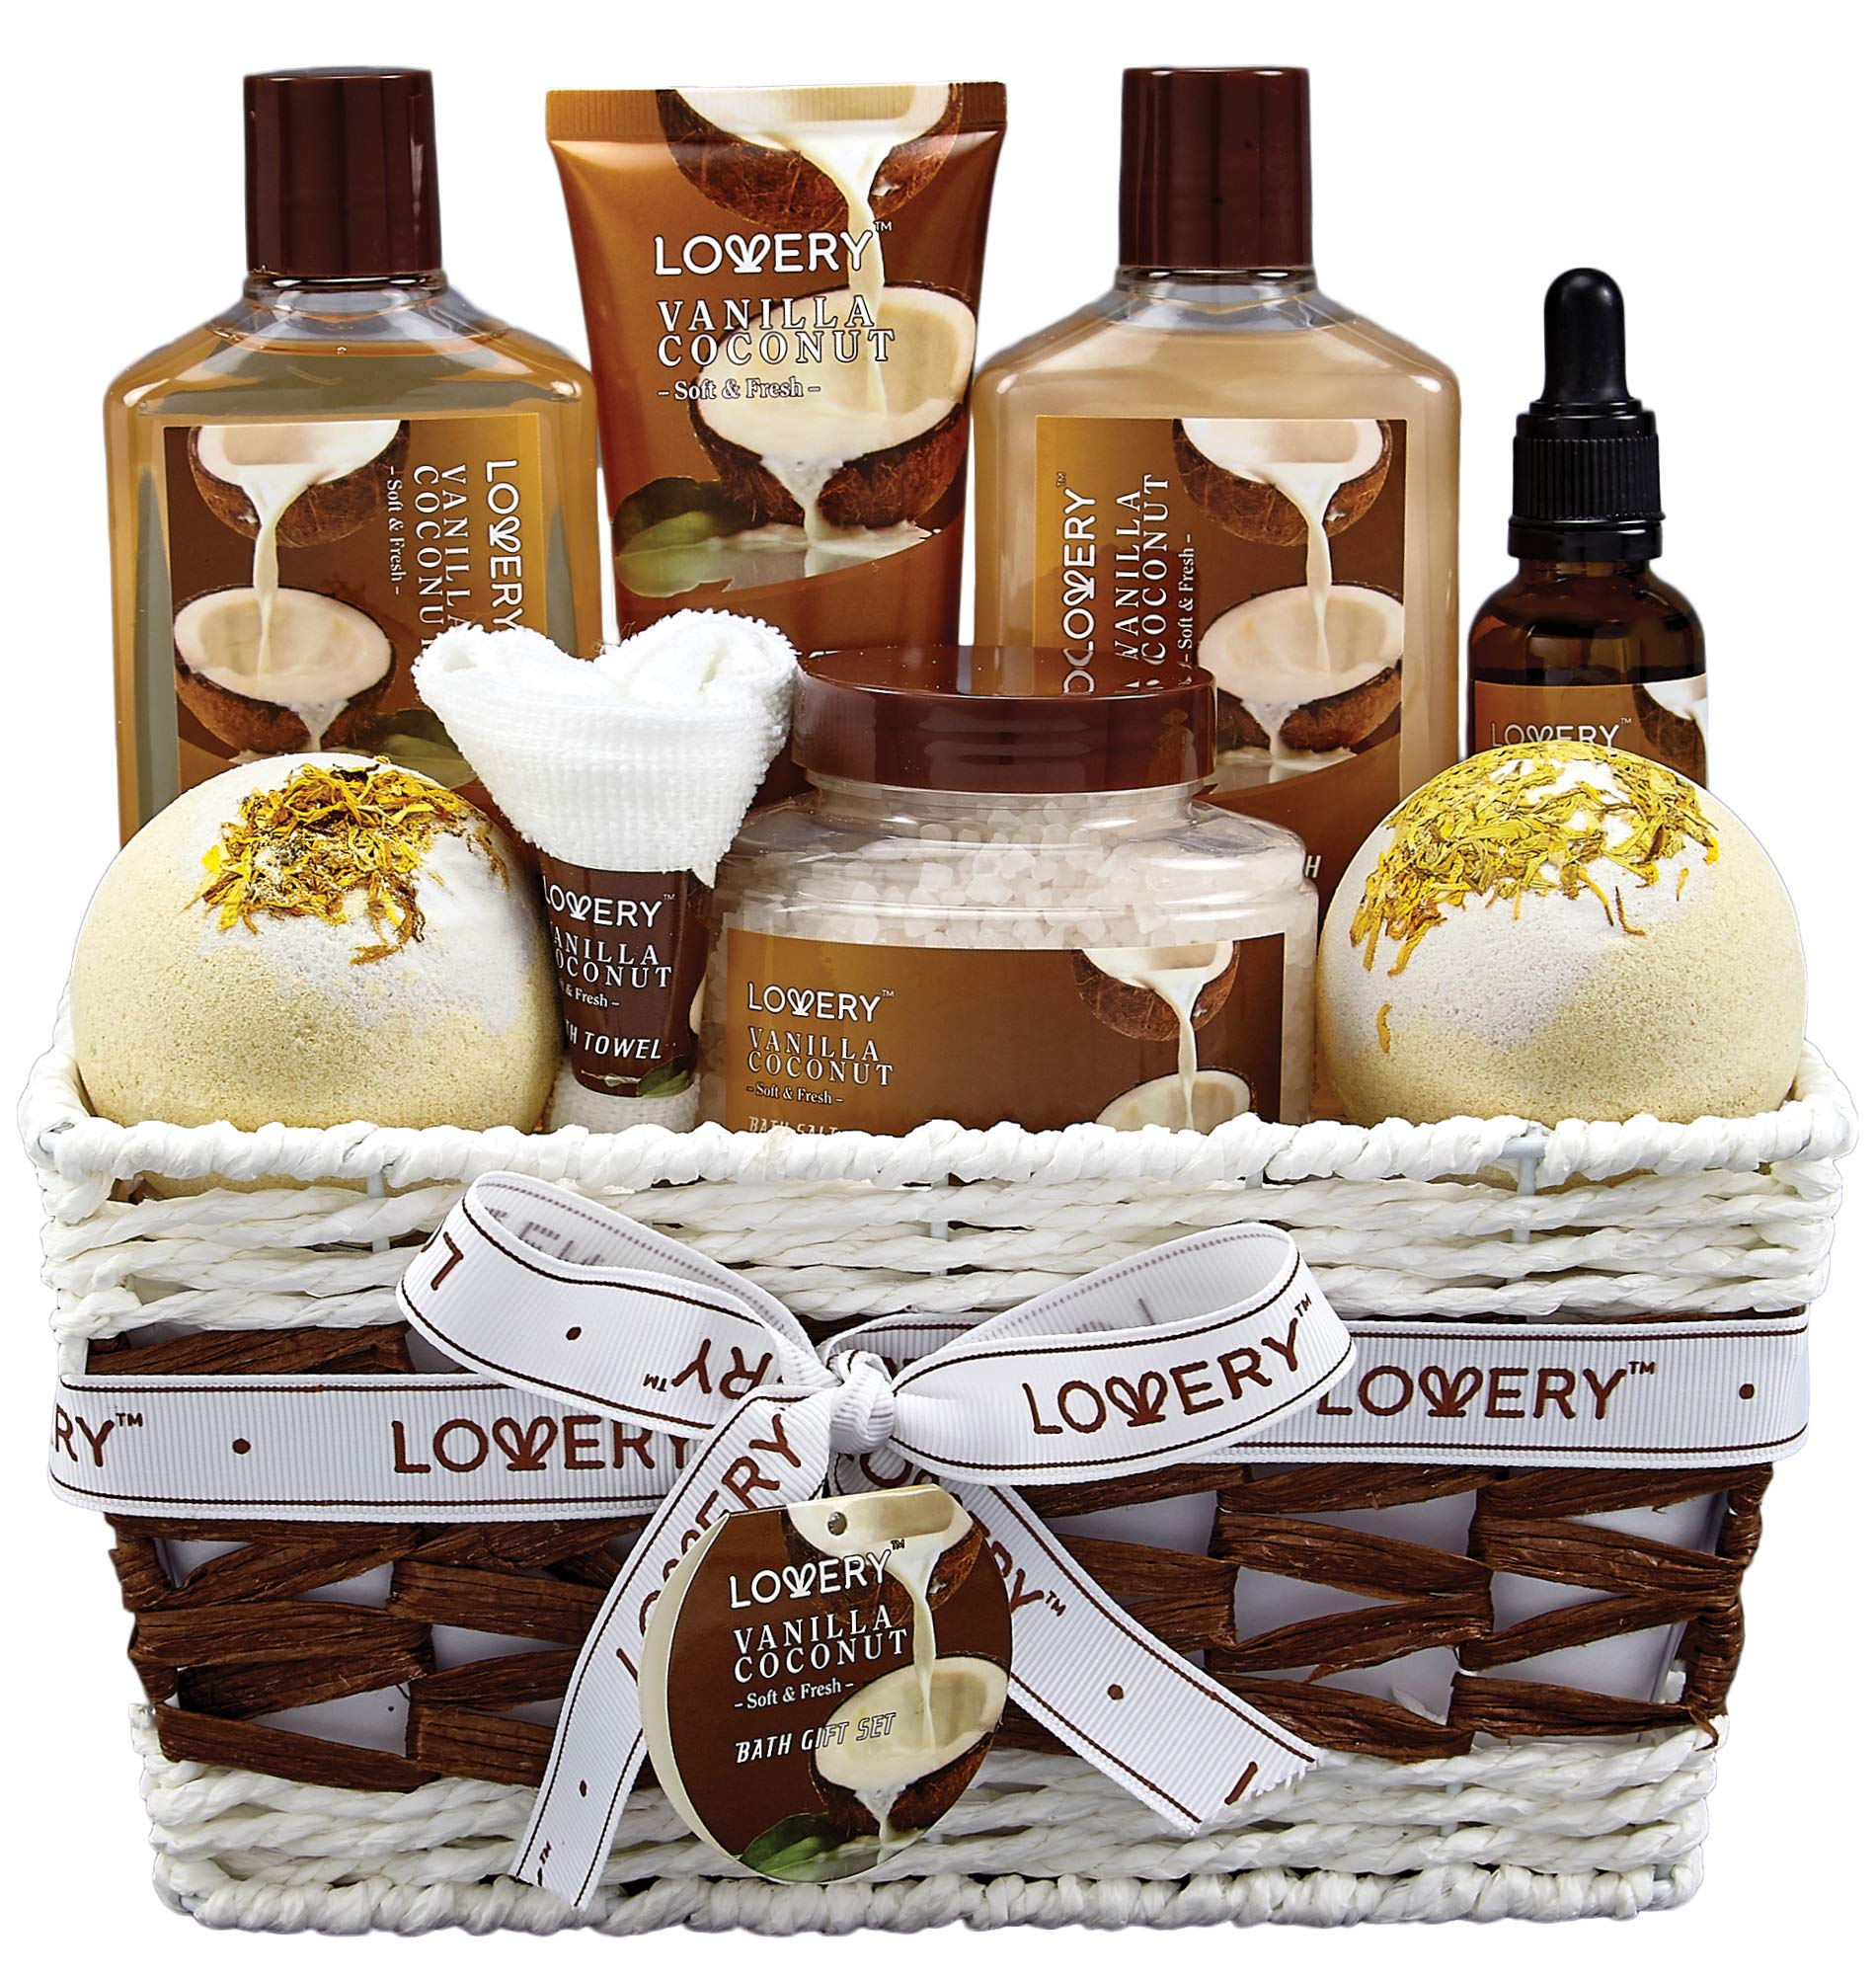 Bath and Body Gift Basket For Women and Men - 9 Piece Set of Vanilla Coconut Home Spa Set, Includes Fragrant Lotions, Extra Large Bath Bombs, Coconut Oil, Luxurious Bath Towel & More by LOVERY